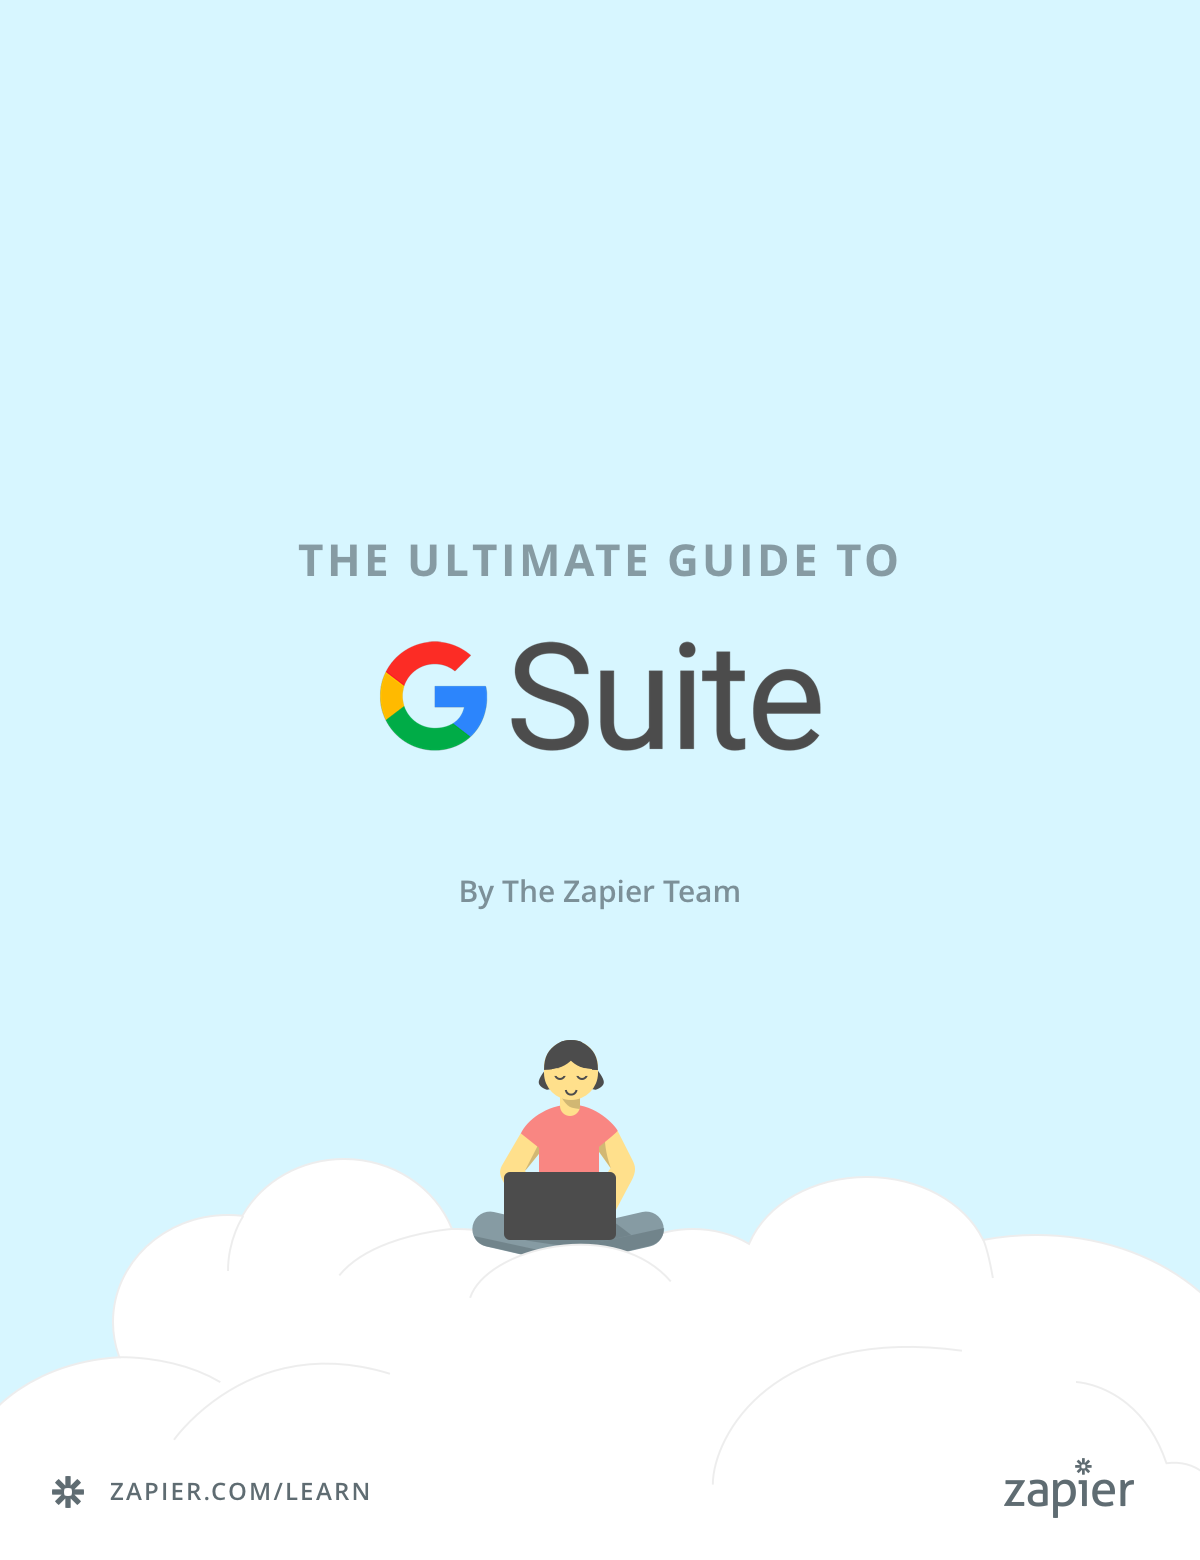 A guide to optimizing gmail 30 of the best email tips tricks and bonus get a free g suite ebook from zapier fandeluxe Images